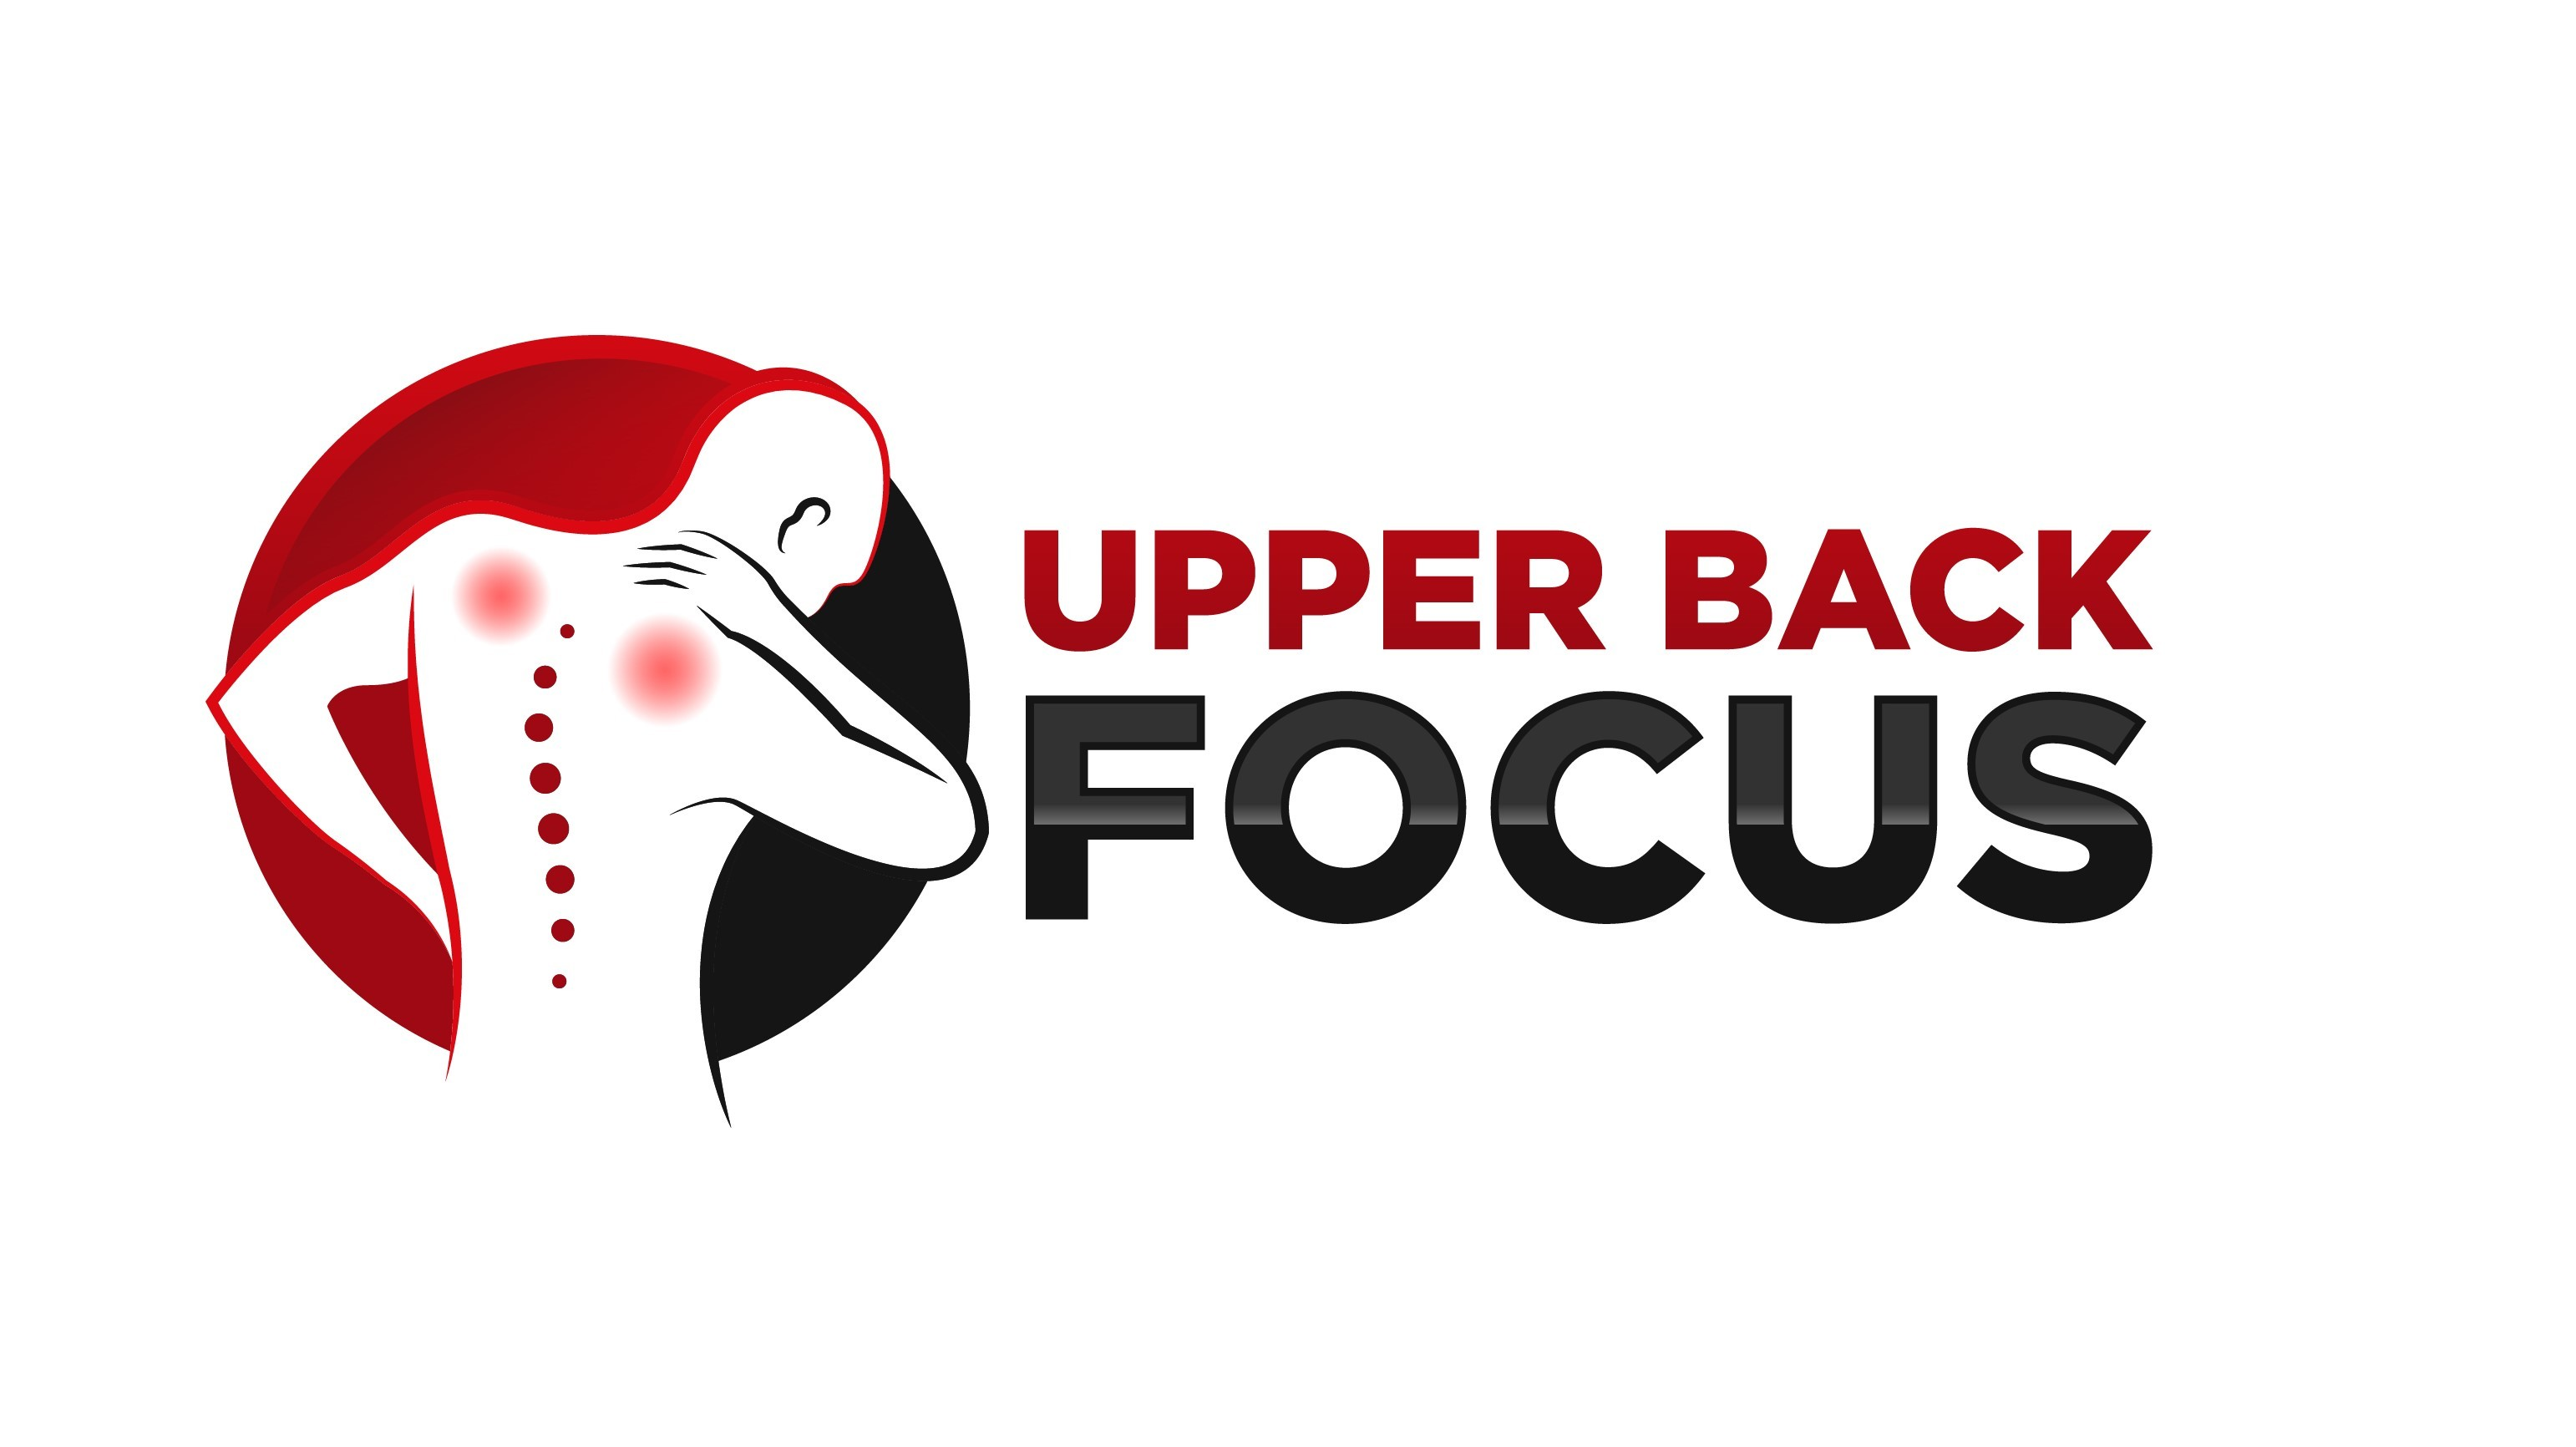 Upper Back Focus